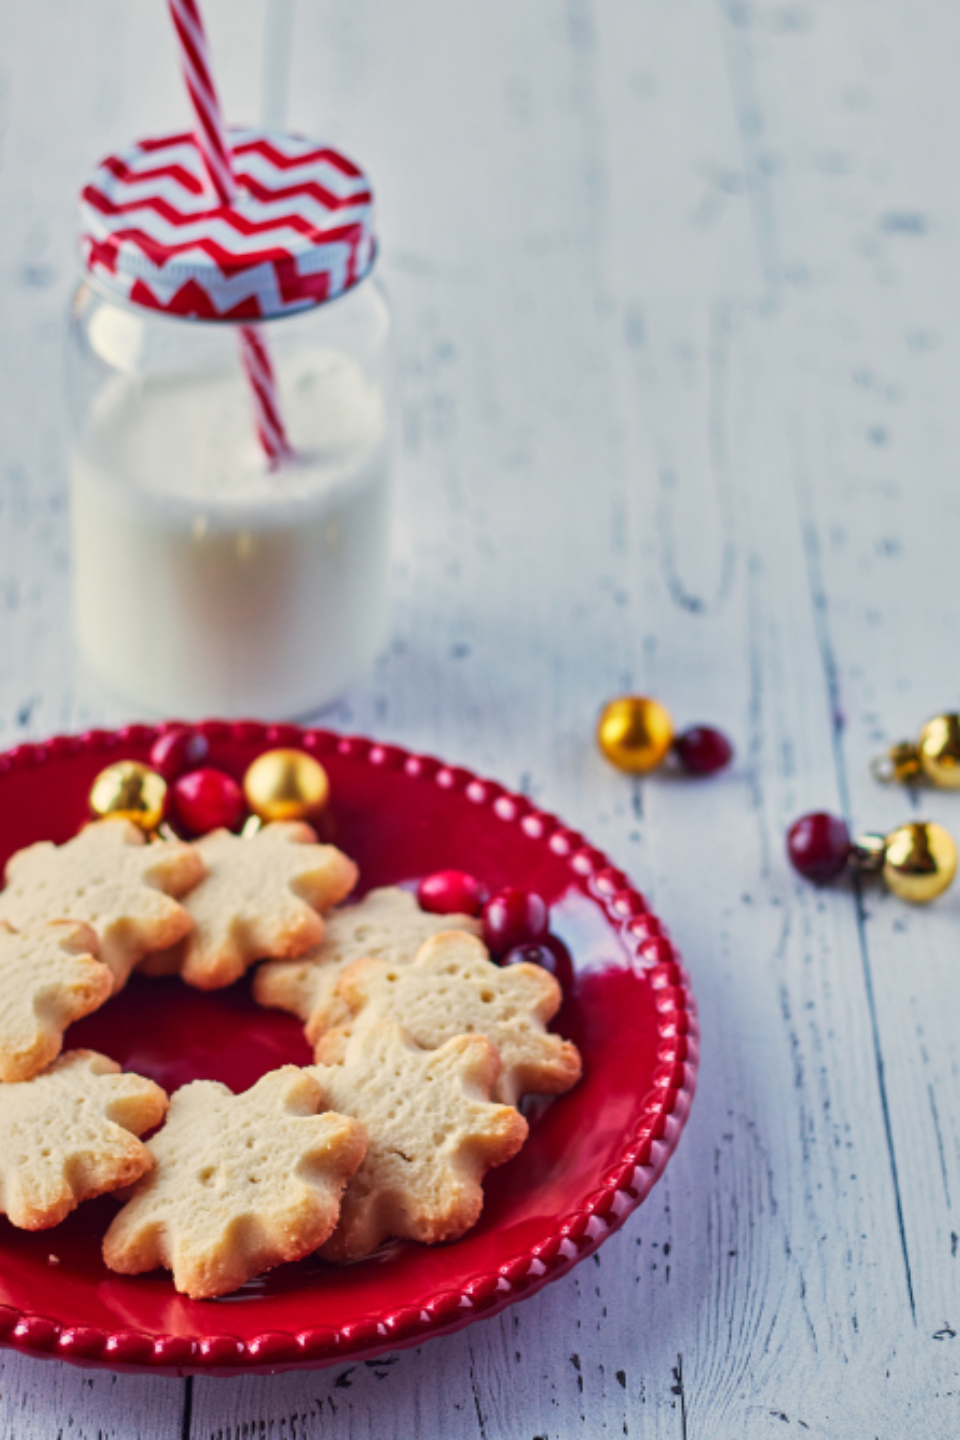 milk cookies christmas festive holiday shortbread snack sweets food rustic wood glass jar straw plate cookie ornaments